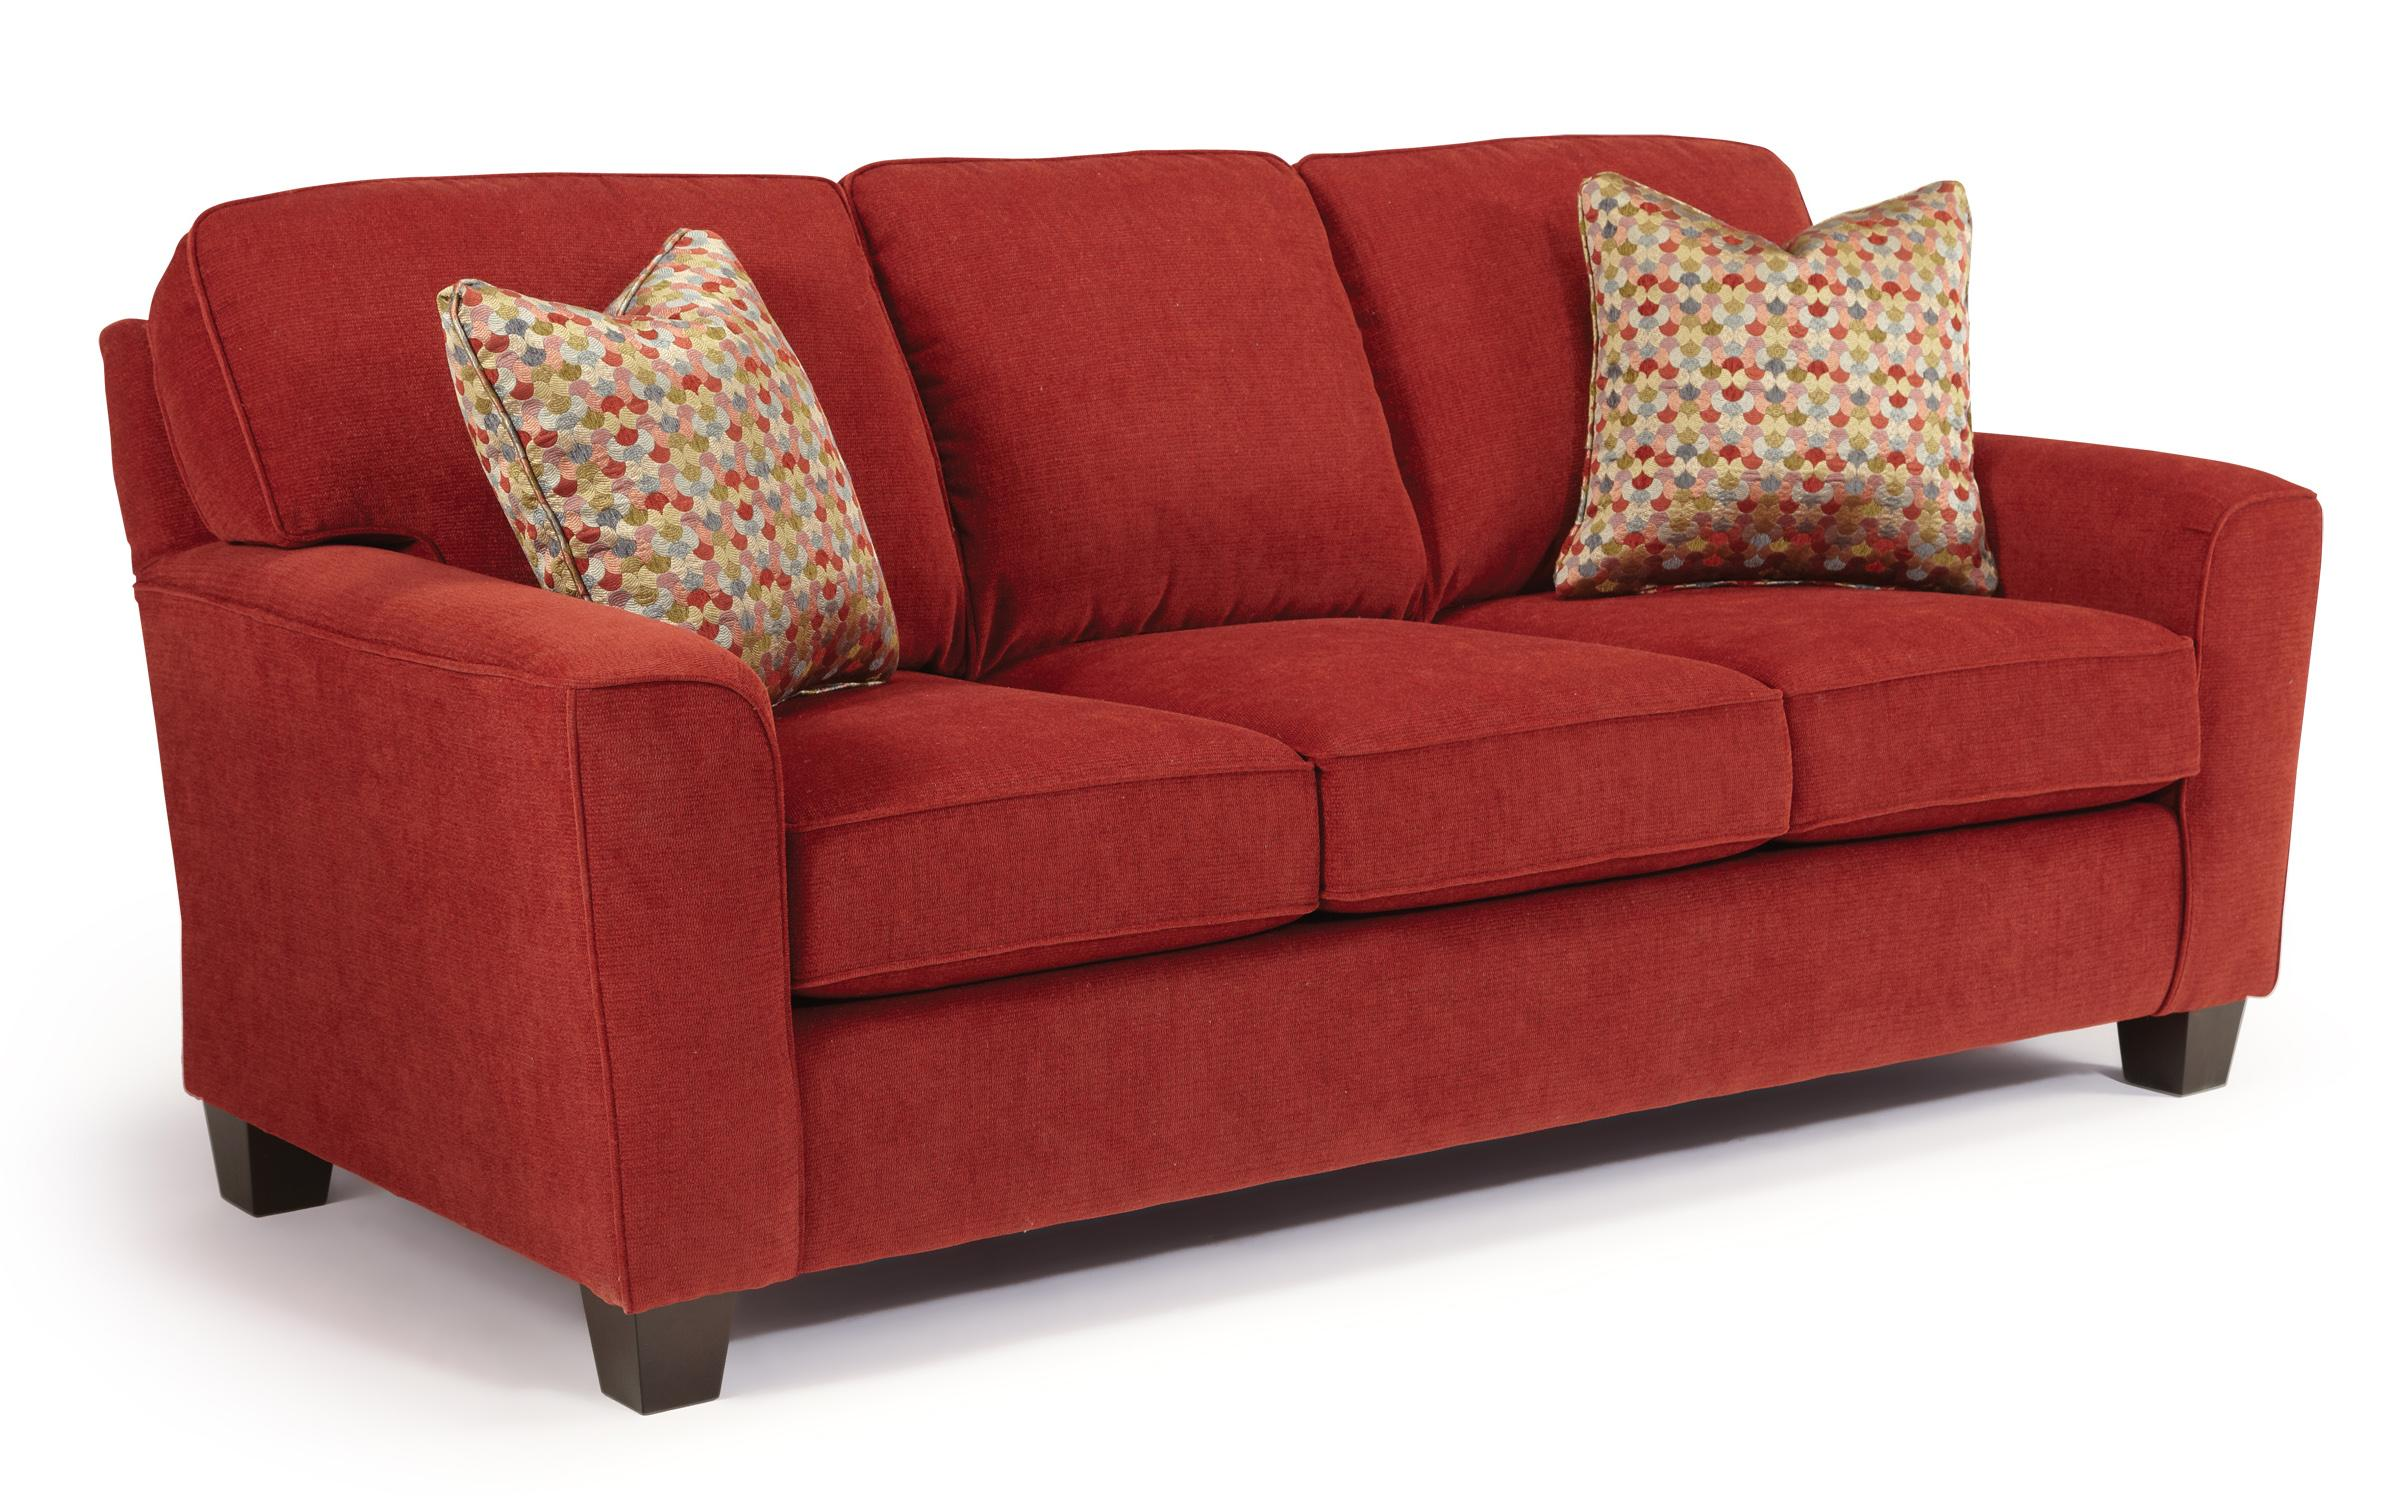 Best Home Furnishings Annabel  <b>Custom</b> 3 Over 3 Sofa - Item Number: S81E